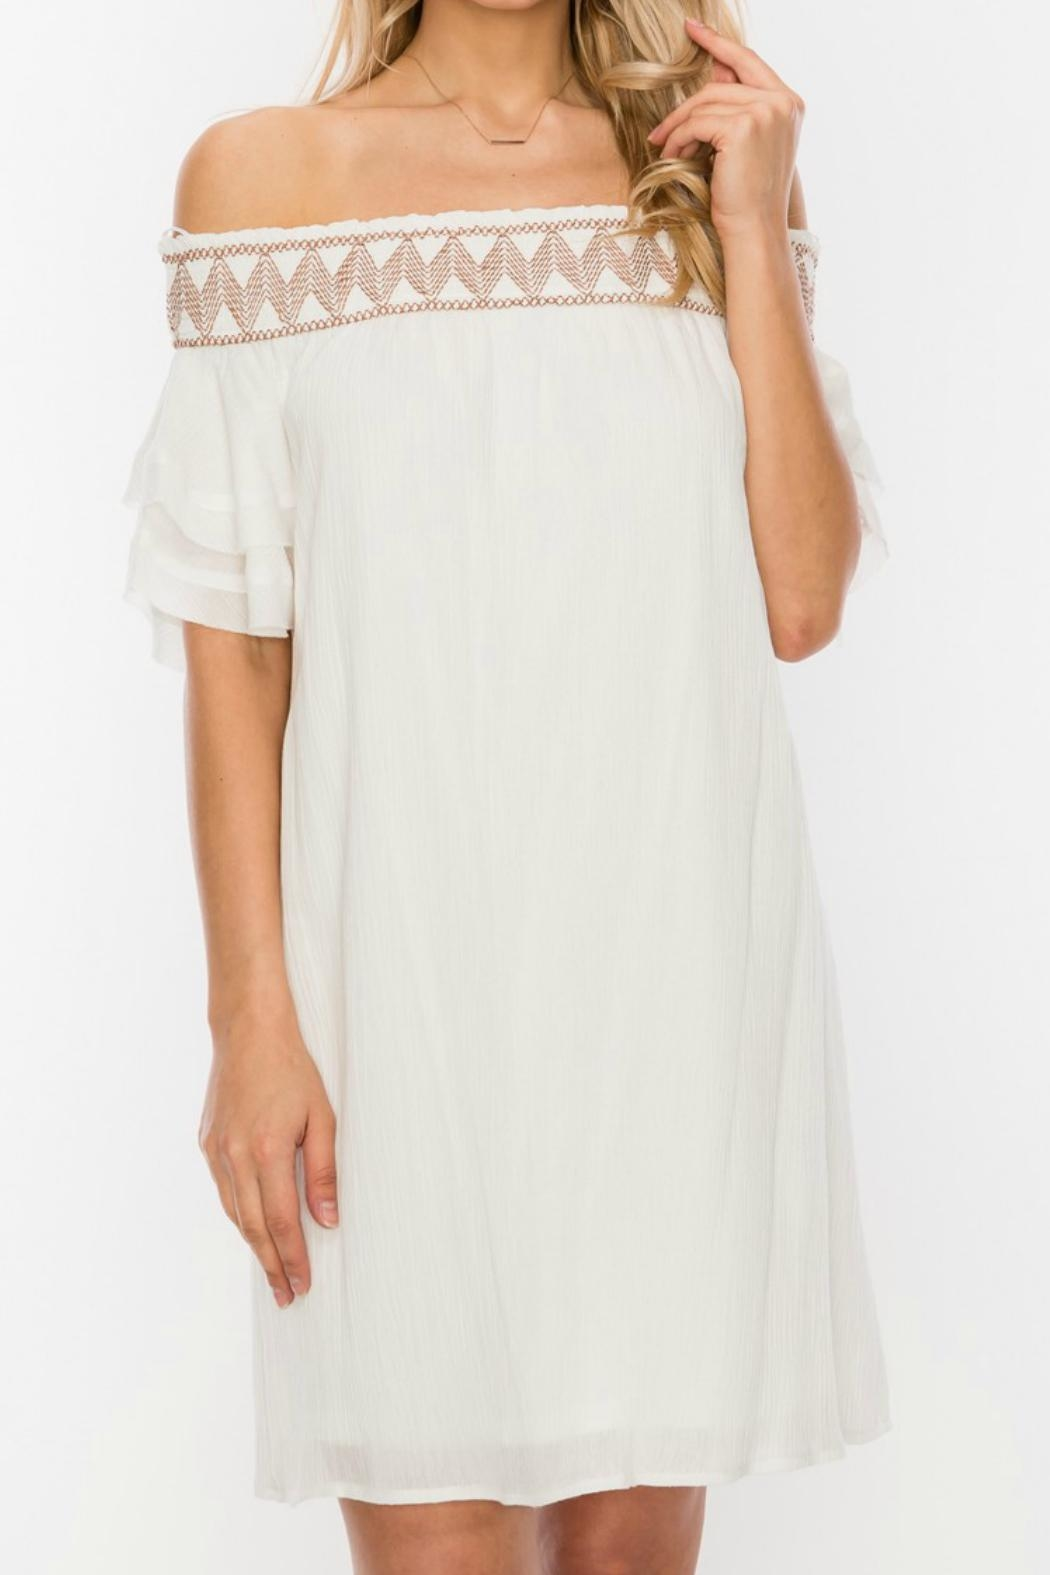 ALB Anchorage Embroidered Off-Shoulder Dress - Main Image